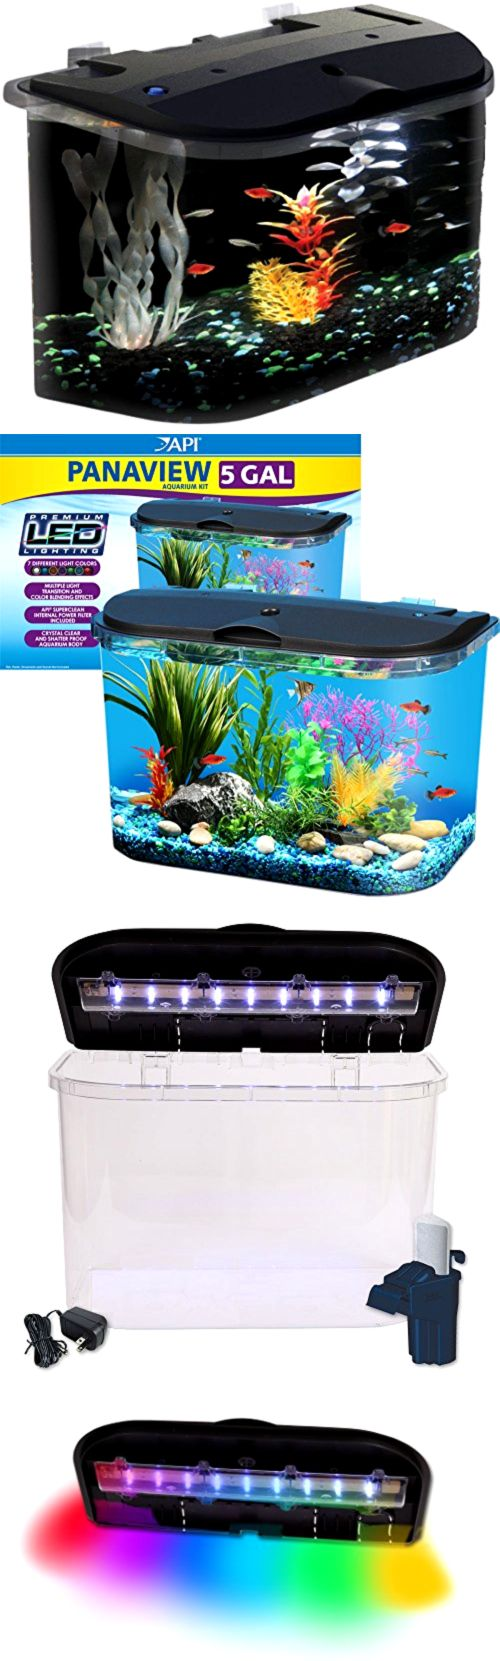 Fish aquarium online delhi - Animals Fish And Aquariums 5 Gallon Big Fish Aquarium Kit Led Light Filter Starter Water